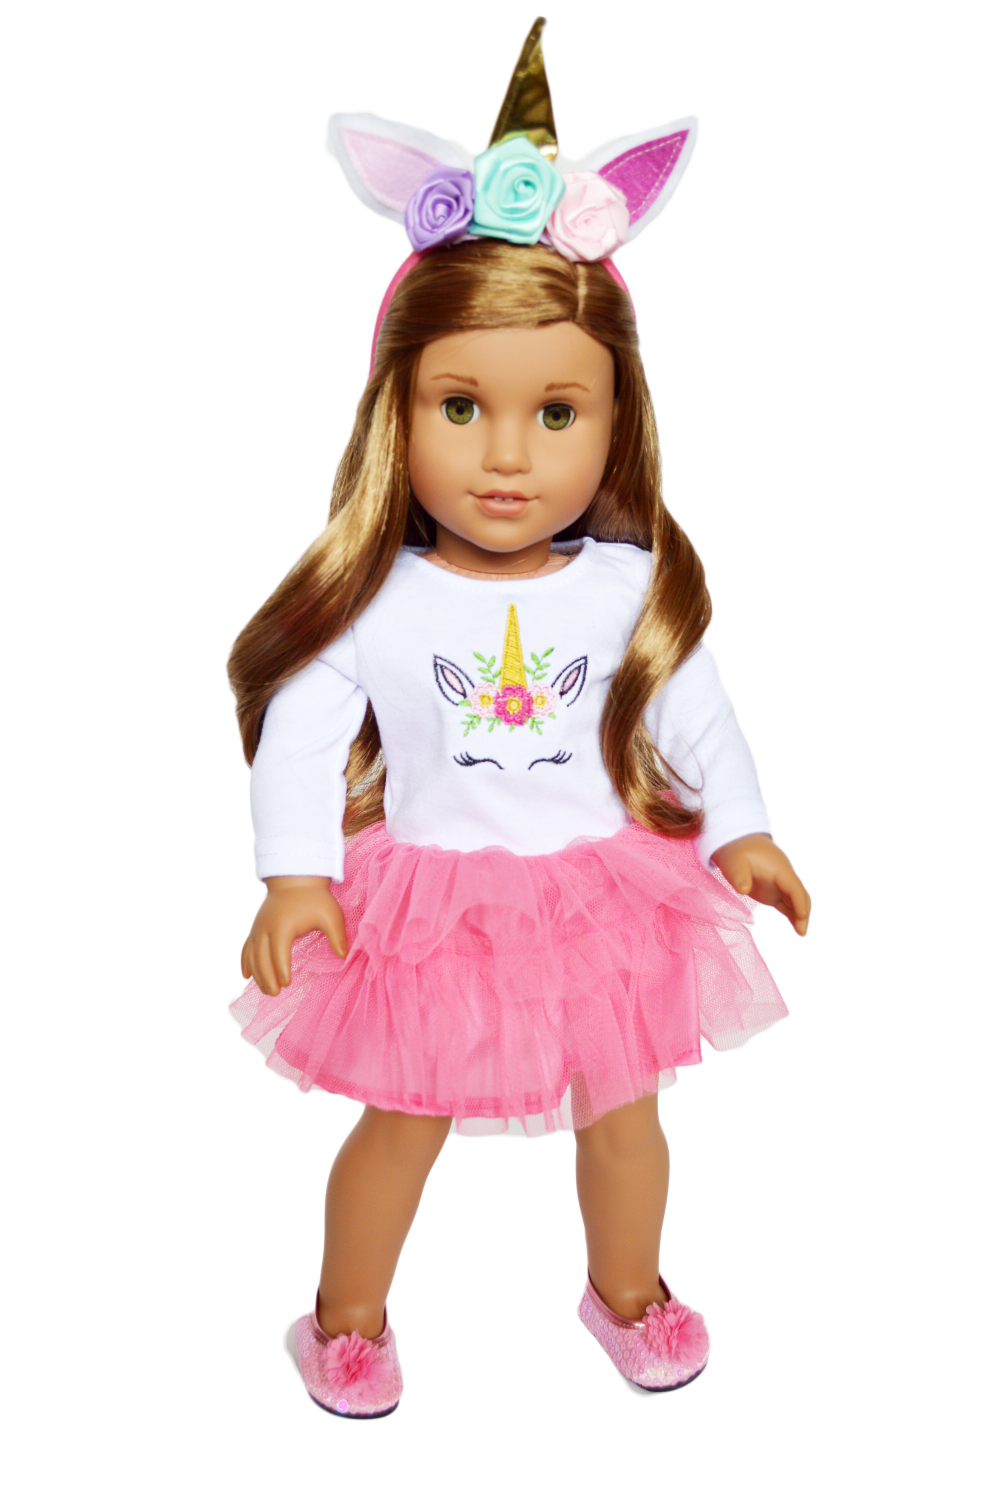 My Brittany's Pink Unicorn Outfit for American Girl Dolls and My Life as Dolls 18 Inch Doll Clothes - Walmart.com